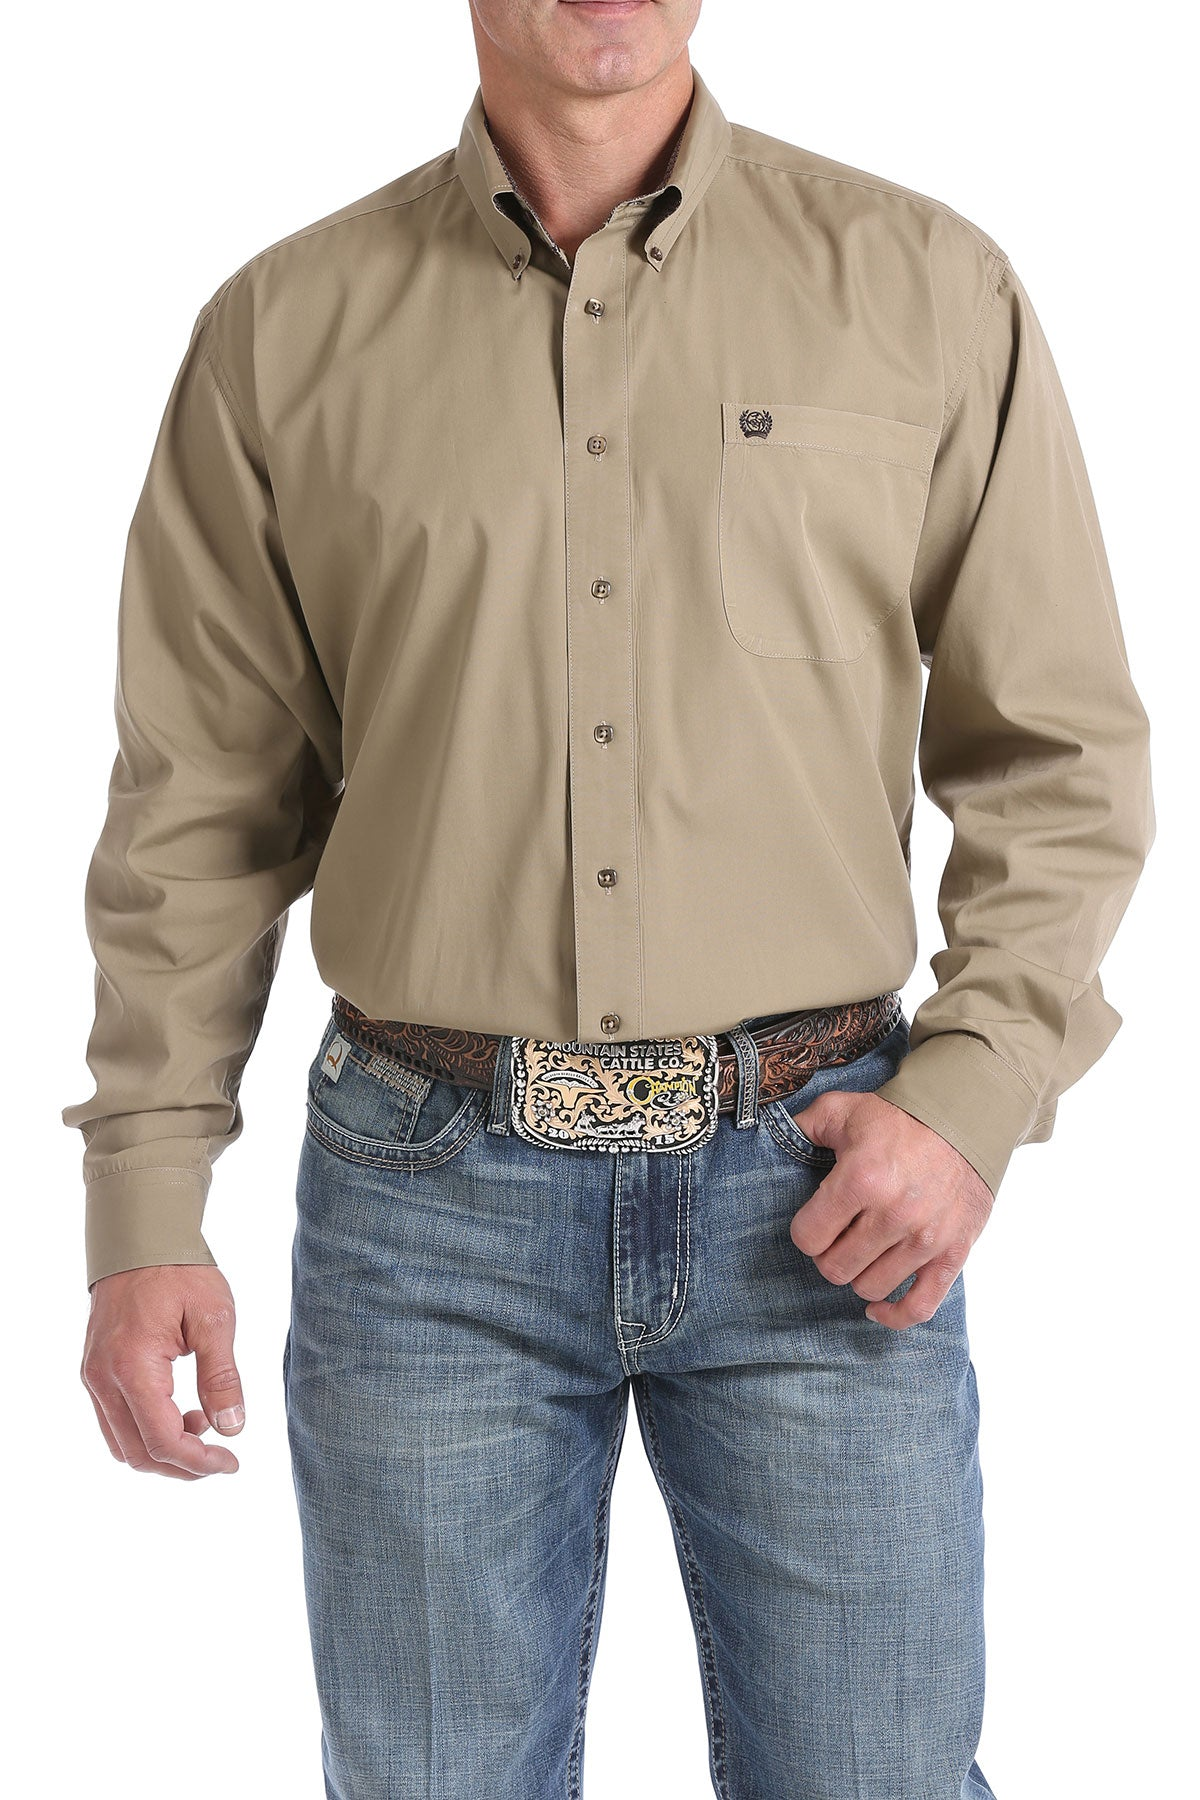 Cinch Solid Tan Men's Button Down